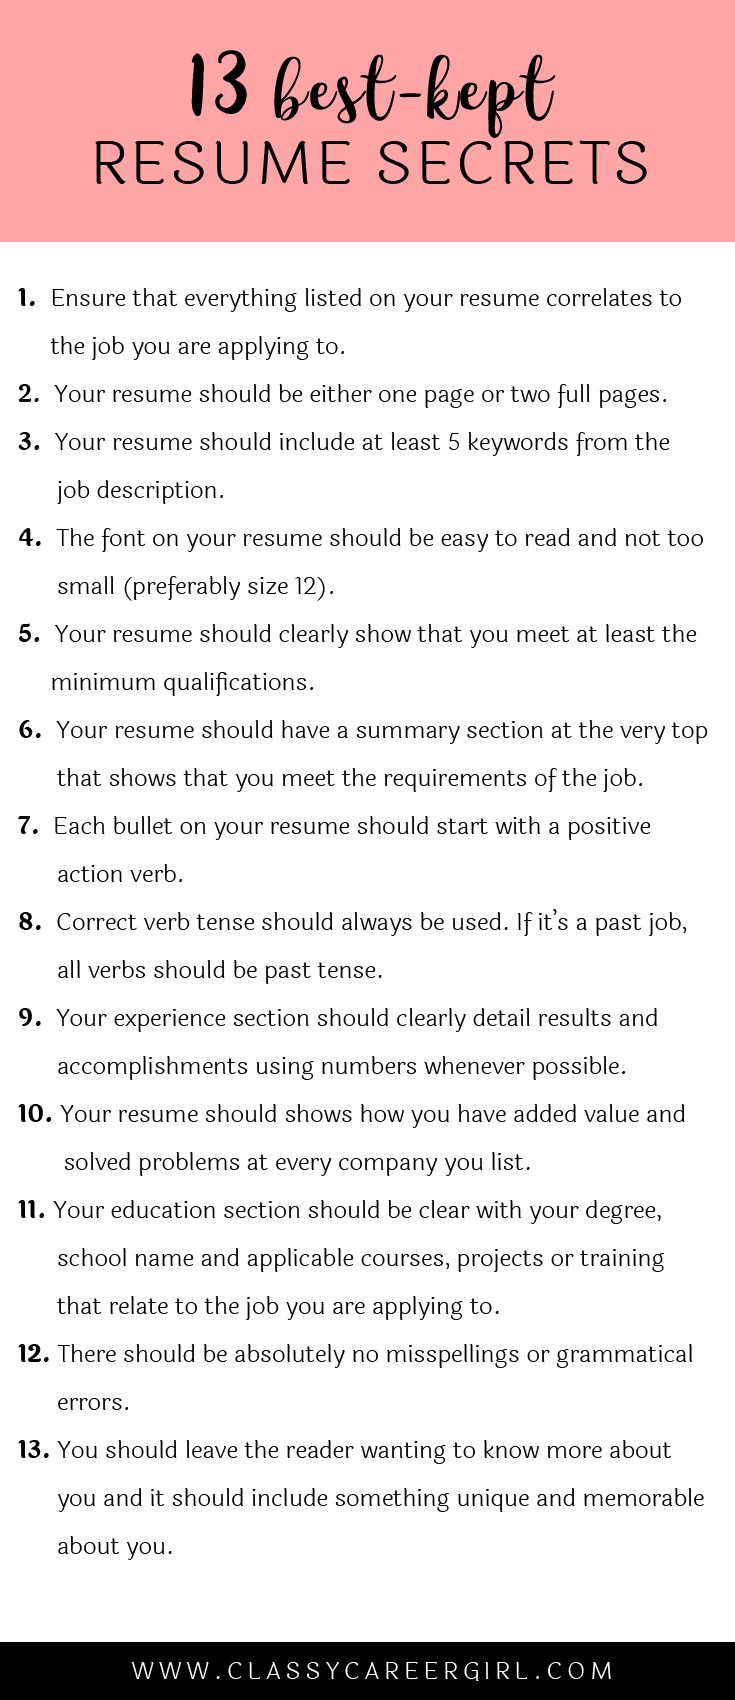 Opposenewapstandardsus  Outstanding  Ideas About Resume On Pinterest  Cv Format Resume Cv And  With Great Some Hiring Managers Will Toss Your Resume Out If You Dont Know These  With Comely Home Health Care Resume Also Software Engineer Resume Sample In Addition Catering Manager Resume And Hostess Job Description Resume As Well As Social Work Resume Objective Additionally Skills To Have On Resume From Pinterestcom With Opposenewapstandardsus  Great  Ideas About Resume On Pinterest  Cv Format Resume Cv And  With Comely Some Hiring Managers Will Toss Your Resume Out If You Dont Know These  And Outstanding Home Health Care Resume Also Software Engineer Resume Sample In Addition Catering Manager Resume From Pinterestcom